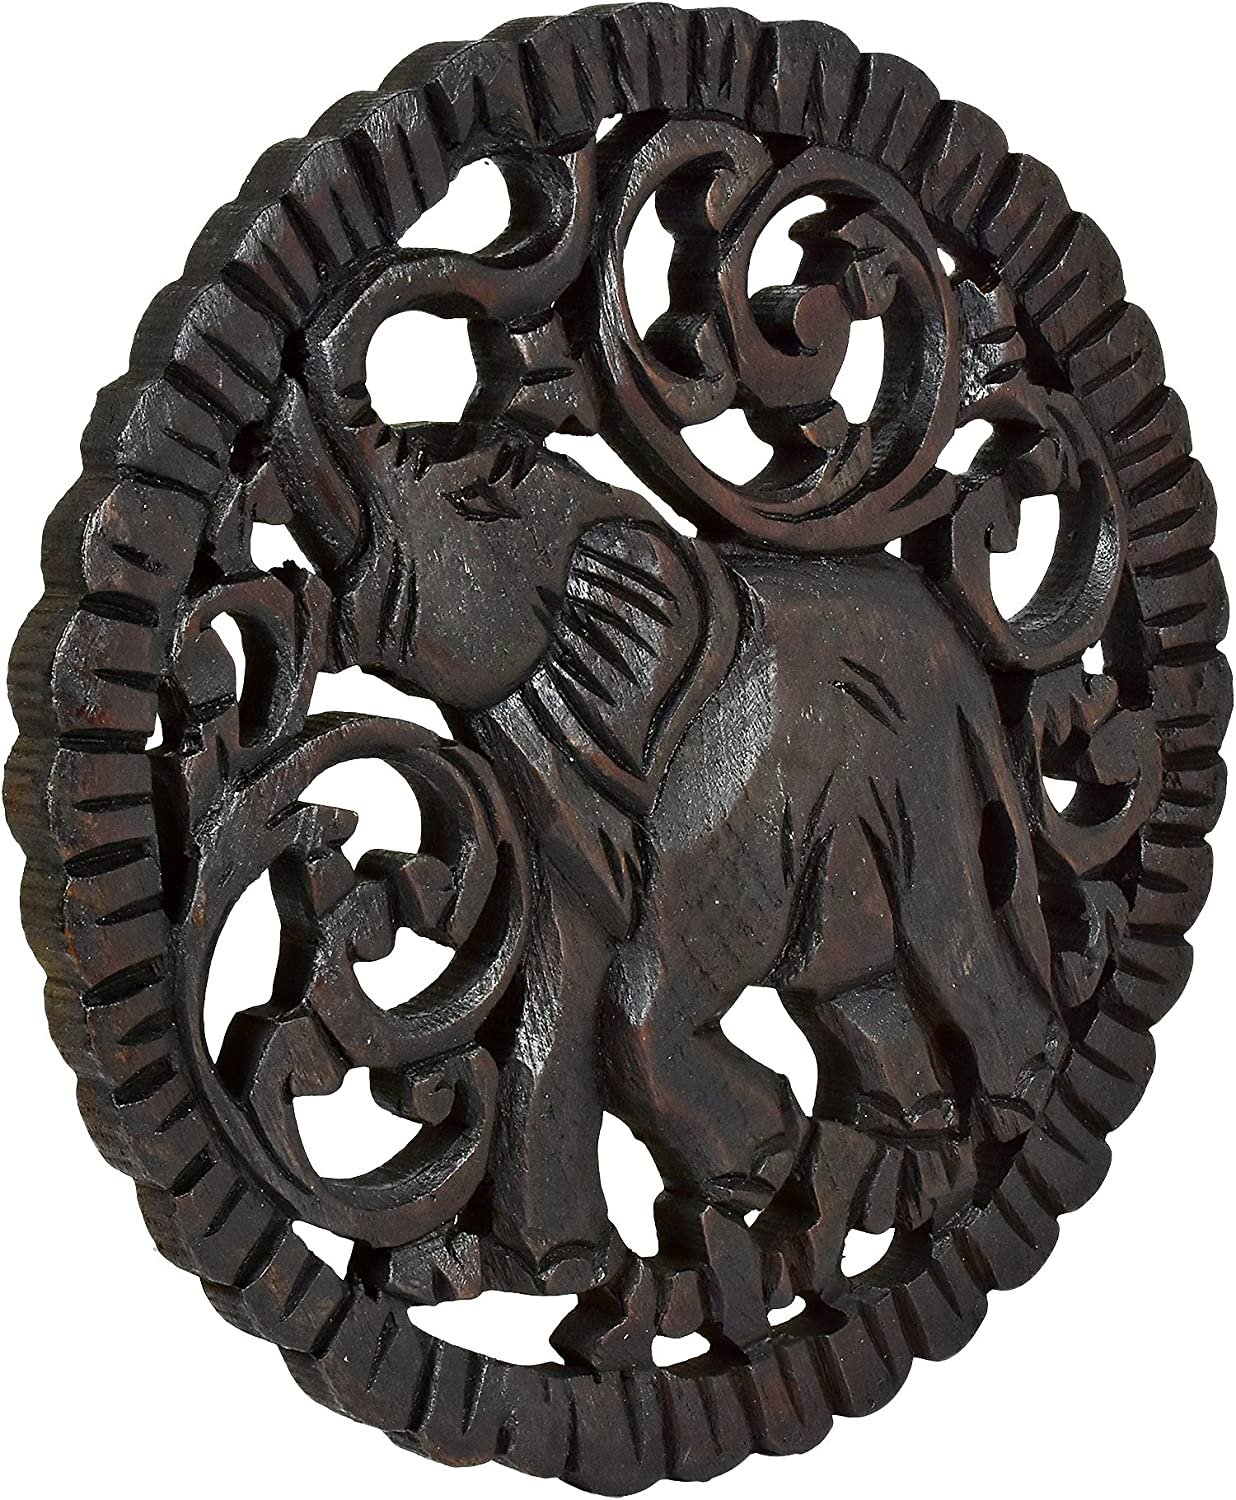 Amazon Com Serenity Elephant Hand Carved Round Teak Wood Wall Art 10 Inches Home Kitchen